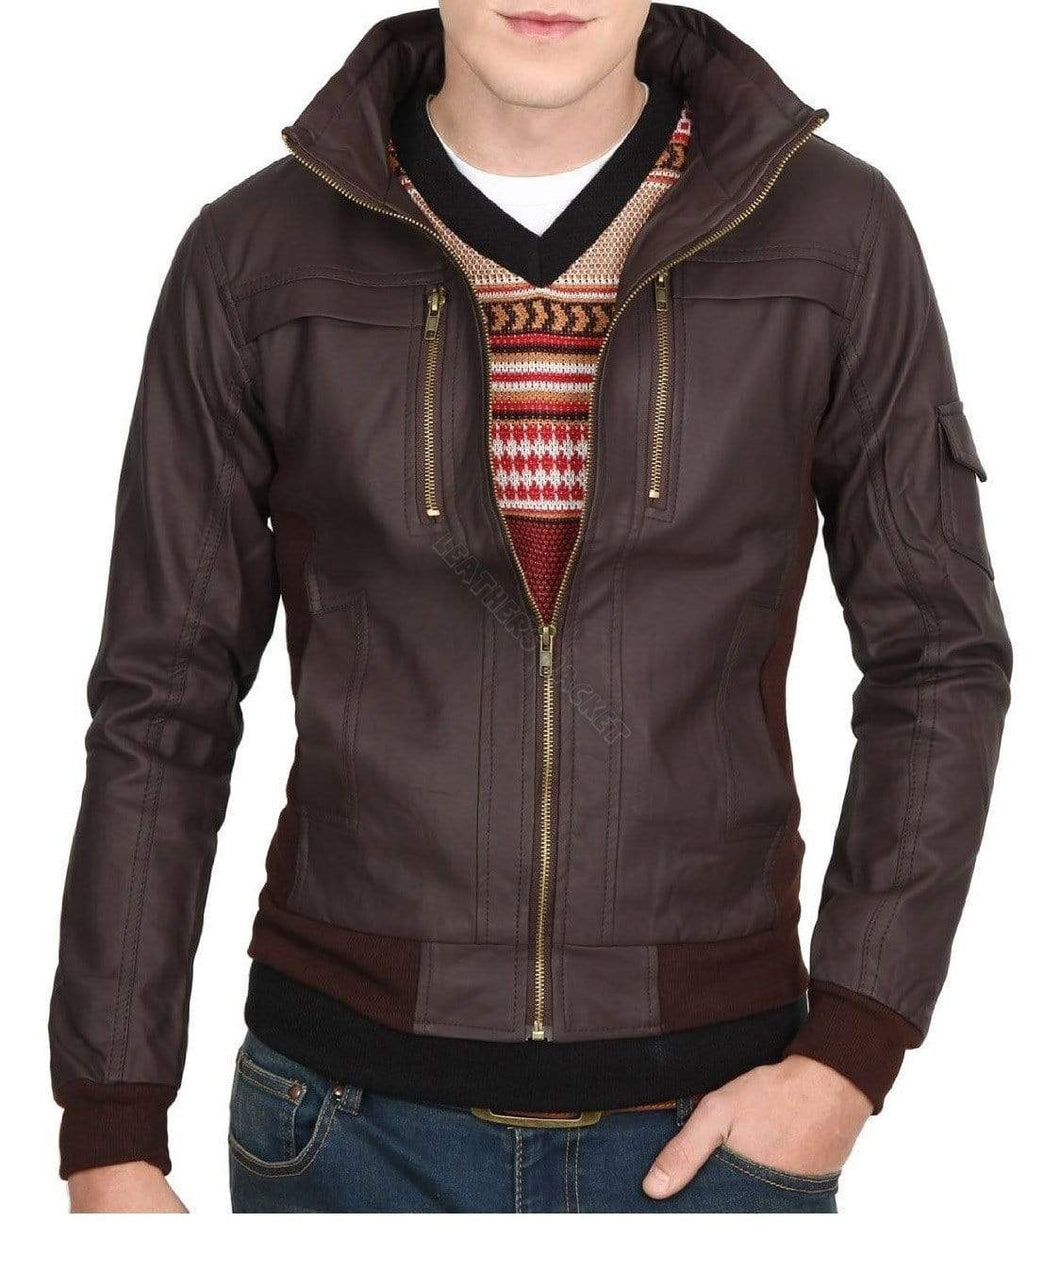 Mens Slim Leather Jacket, Brown Biker Leather Jacket, Zipper Pocket Jacket - leathersguru